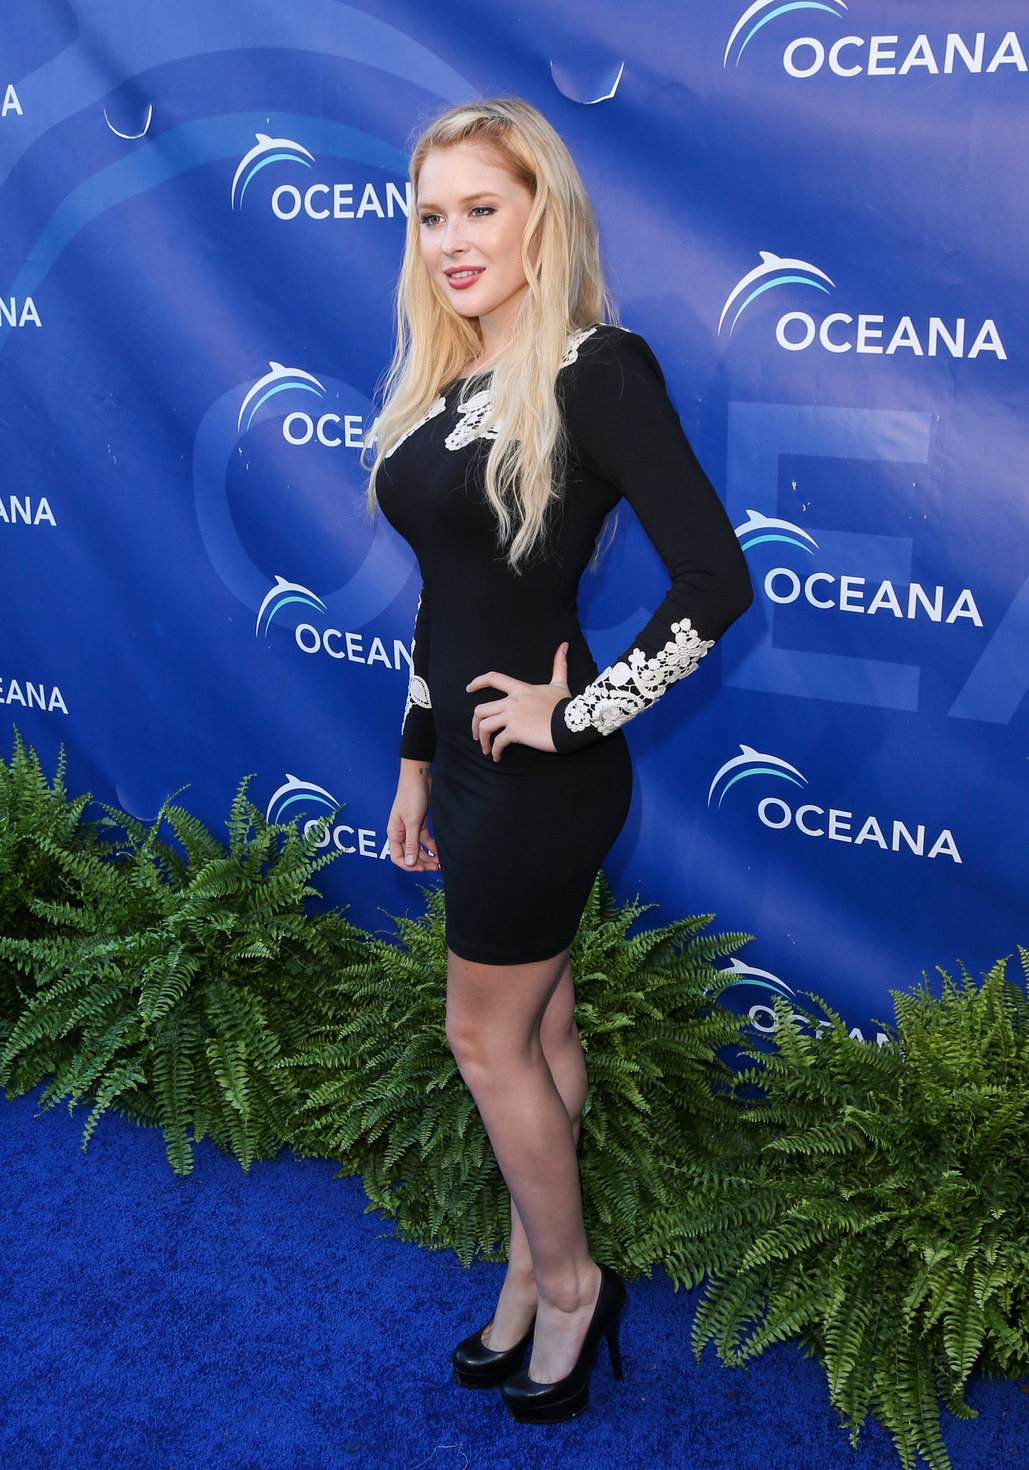 Renee Olstead arrives at 2012 Oceana's SeaChange Summer Party on July 29, 2012 in Laguna Beach, California